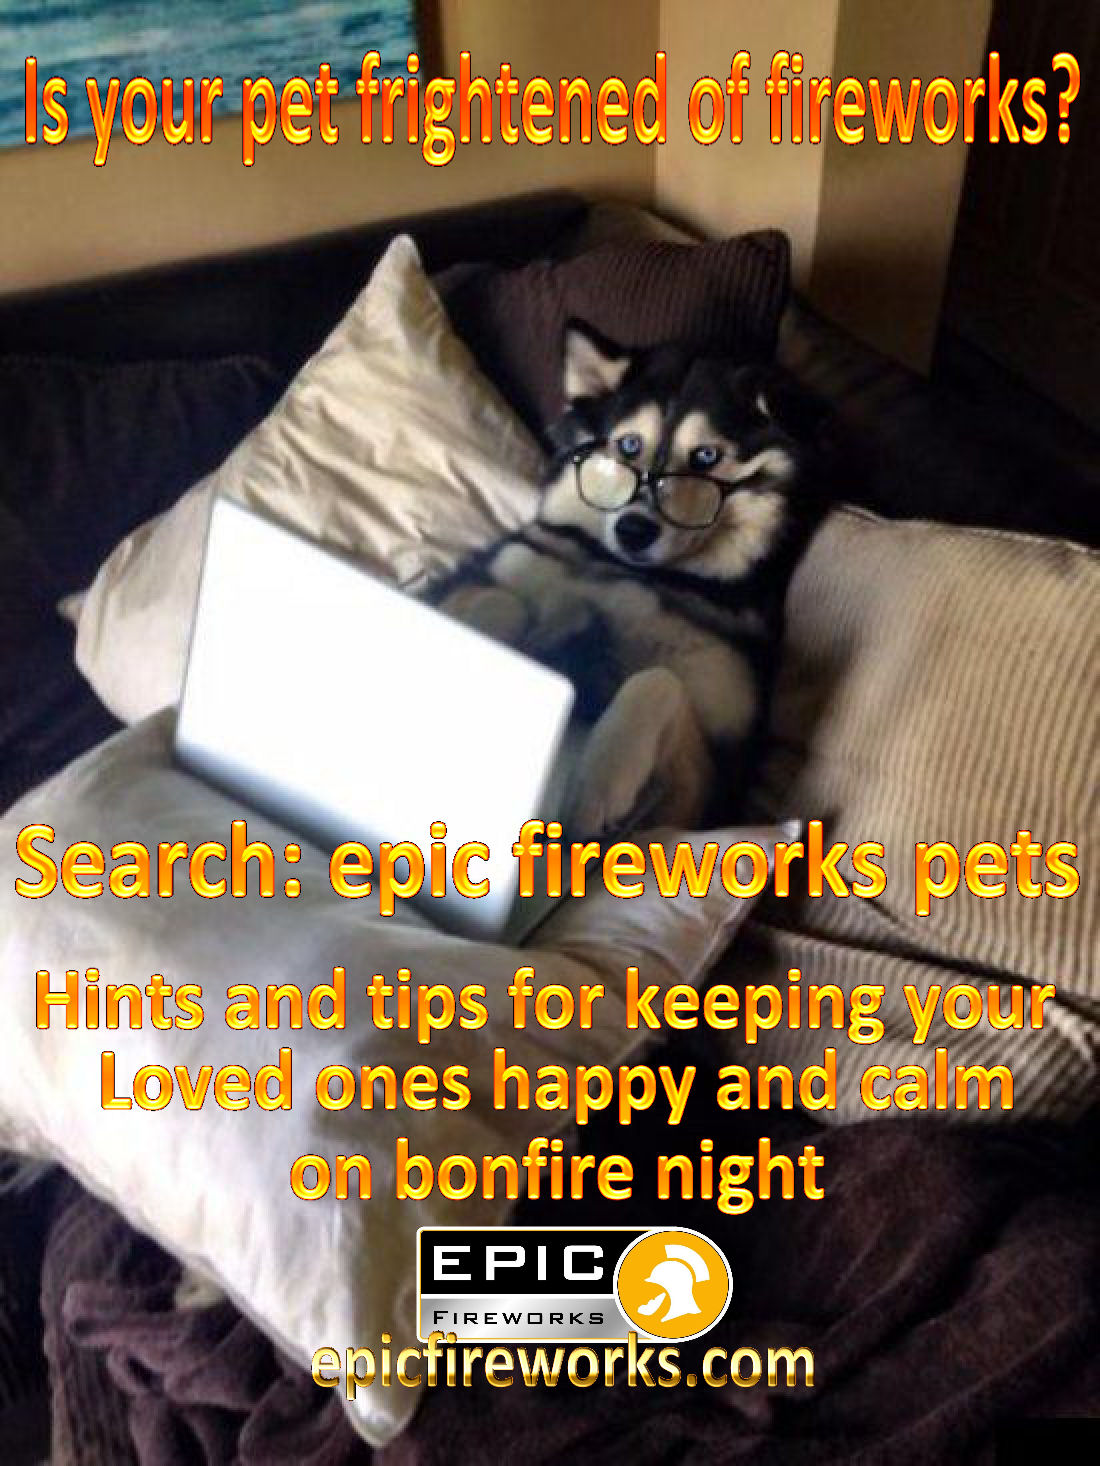 Firework Night - The Kennel Club Advice